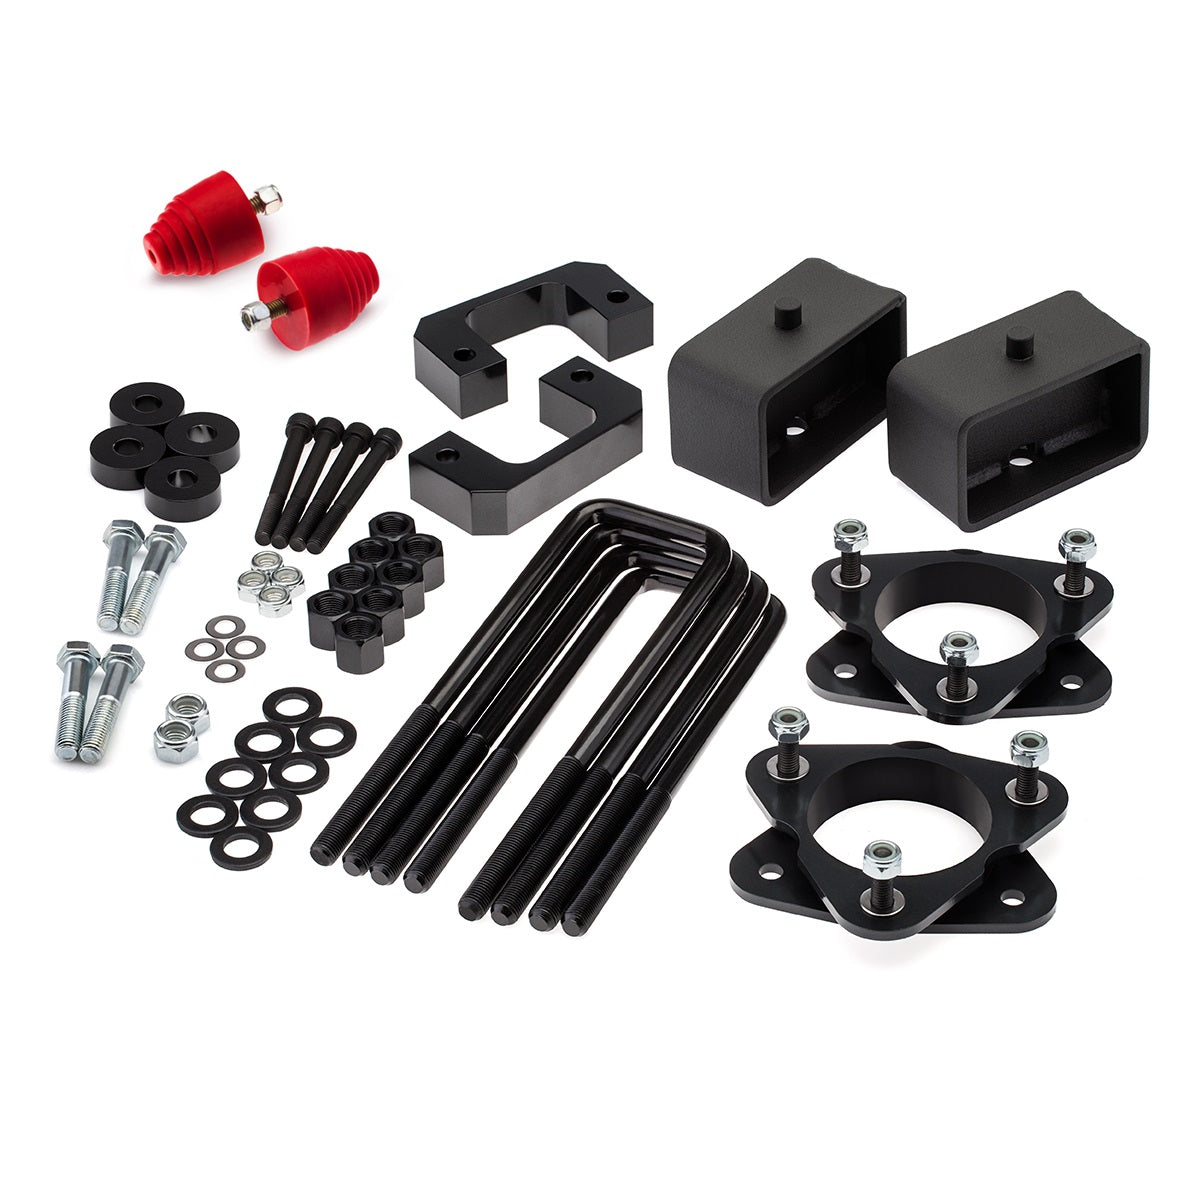 2007-2019 Chevy Silverado 1500 Full Lift Kit with Bumps Stops and Differential Drop Kit